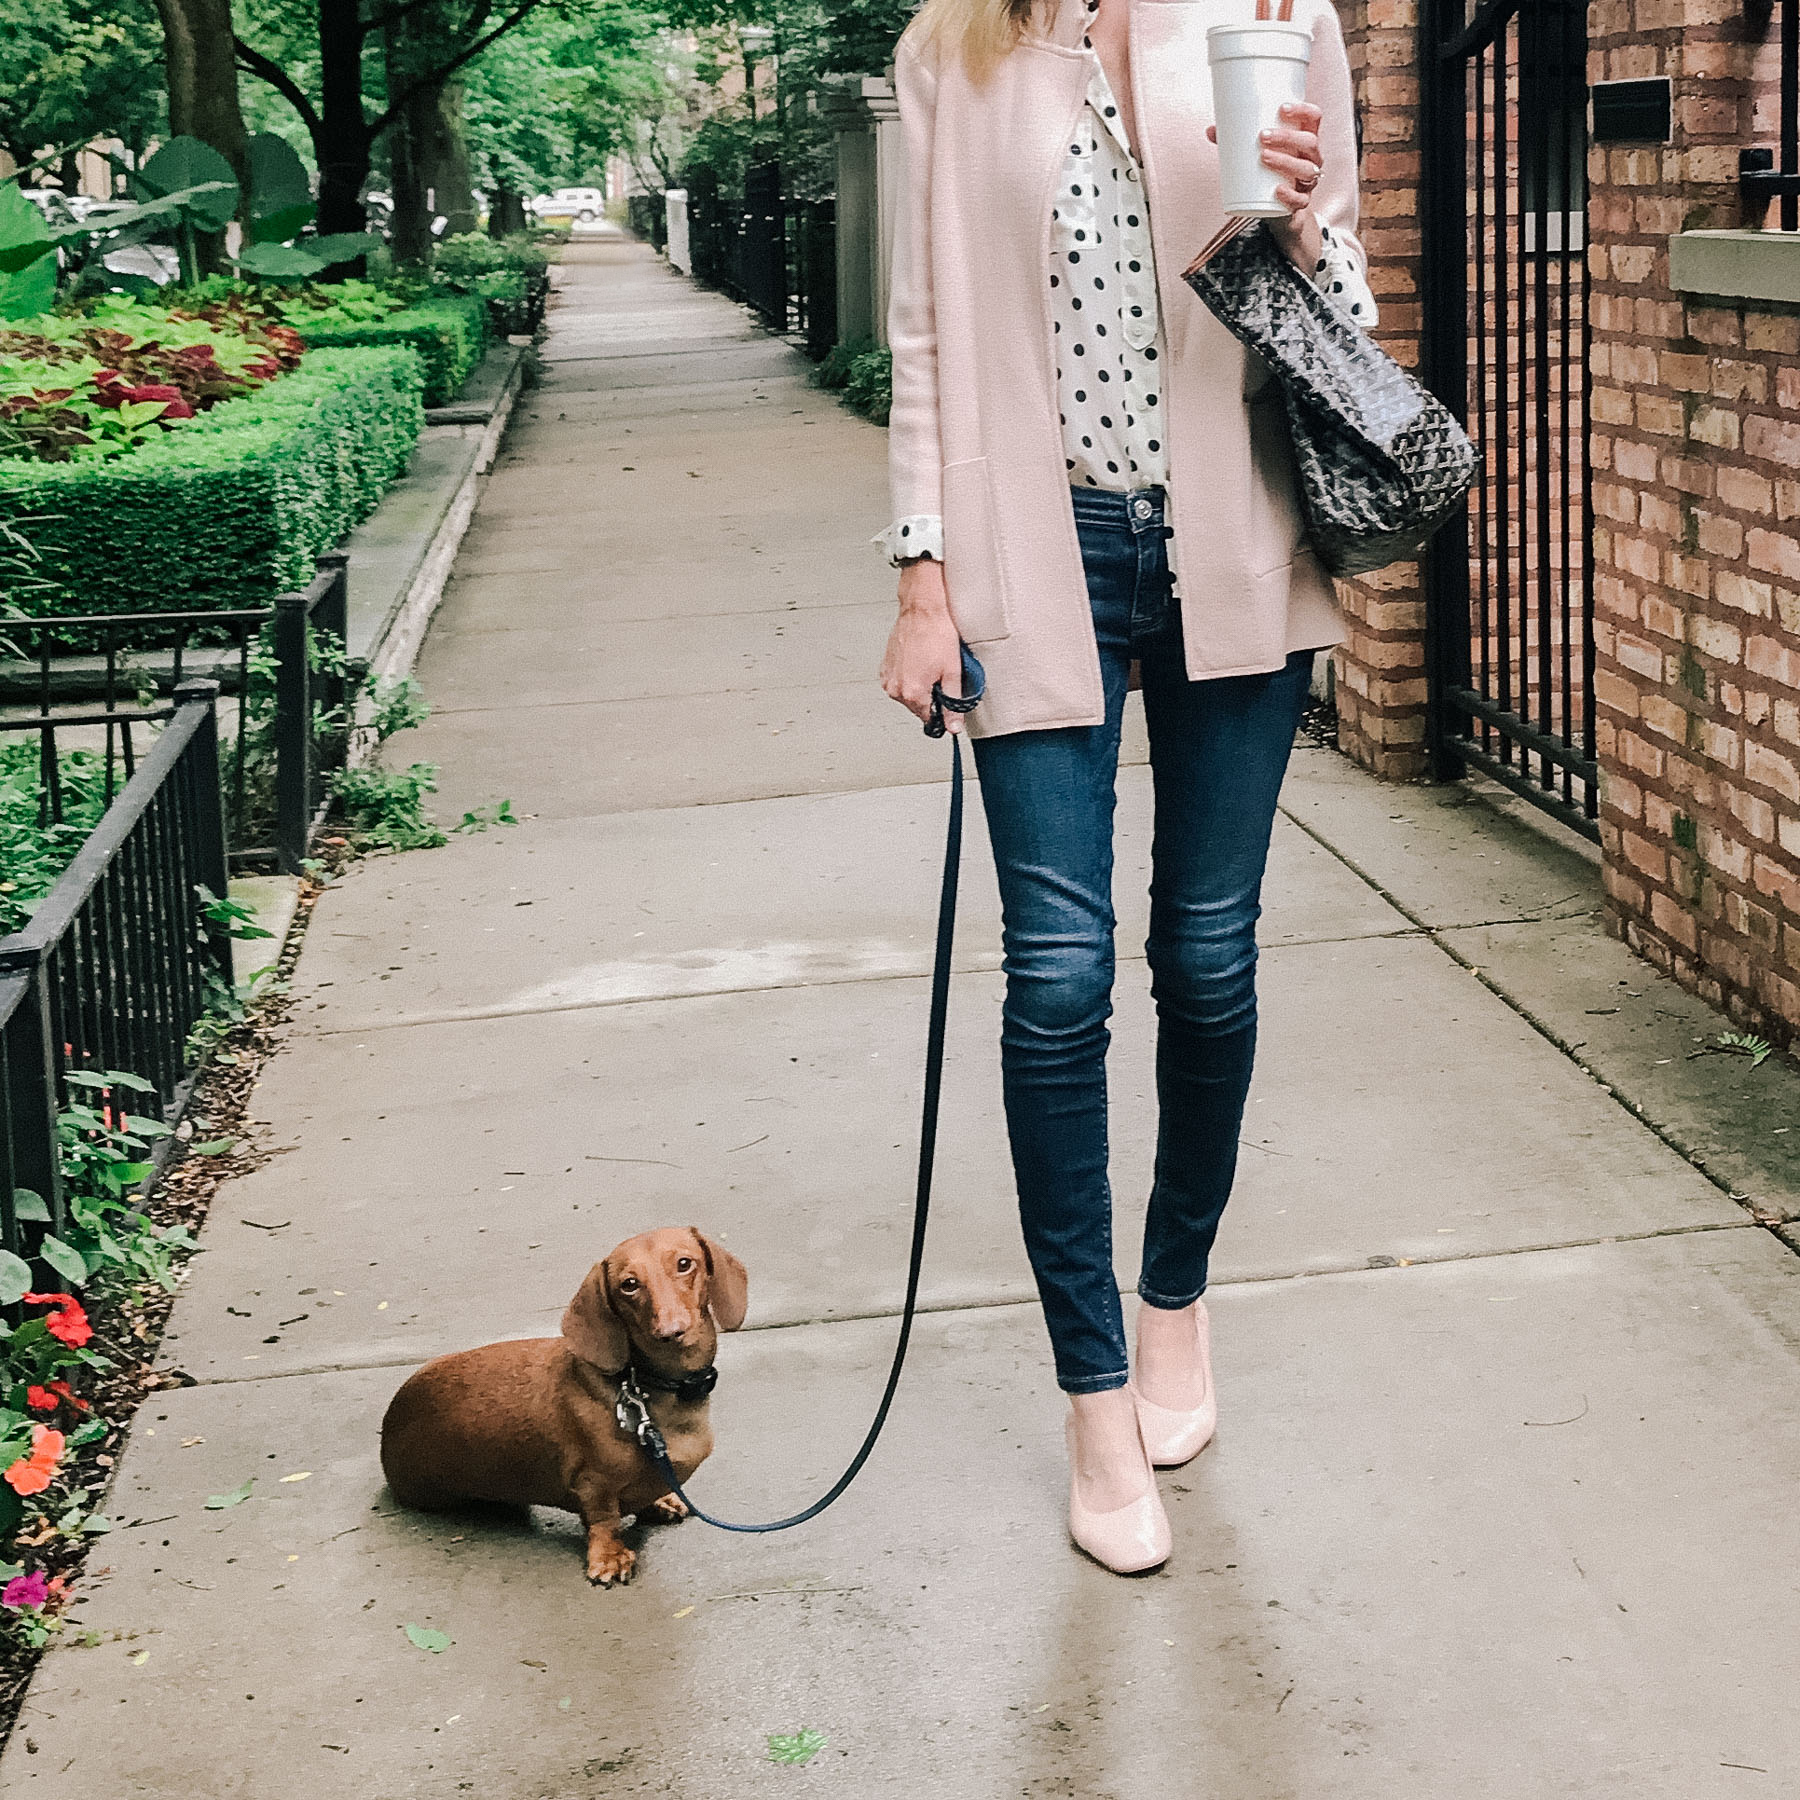 J.Crew Sweater Blazer/ Everlane Day Heel / Goyard Bag / Old Polka Dot Top